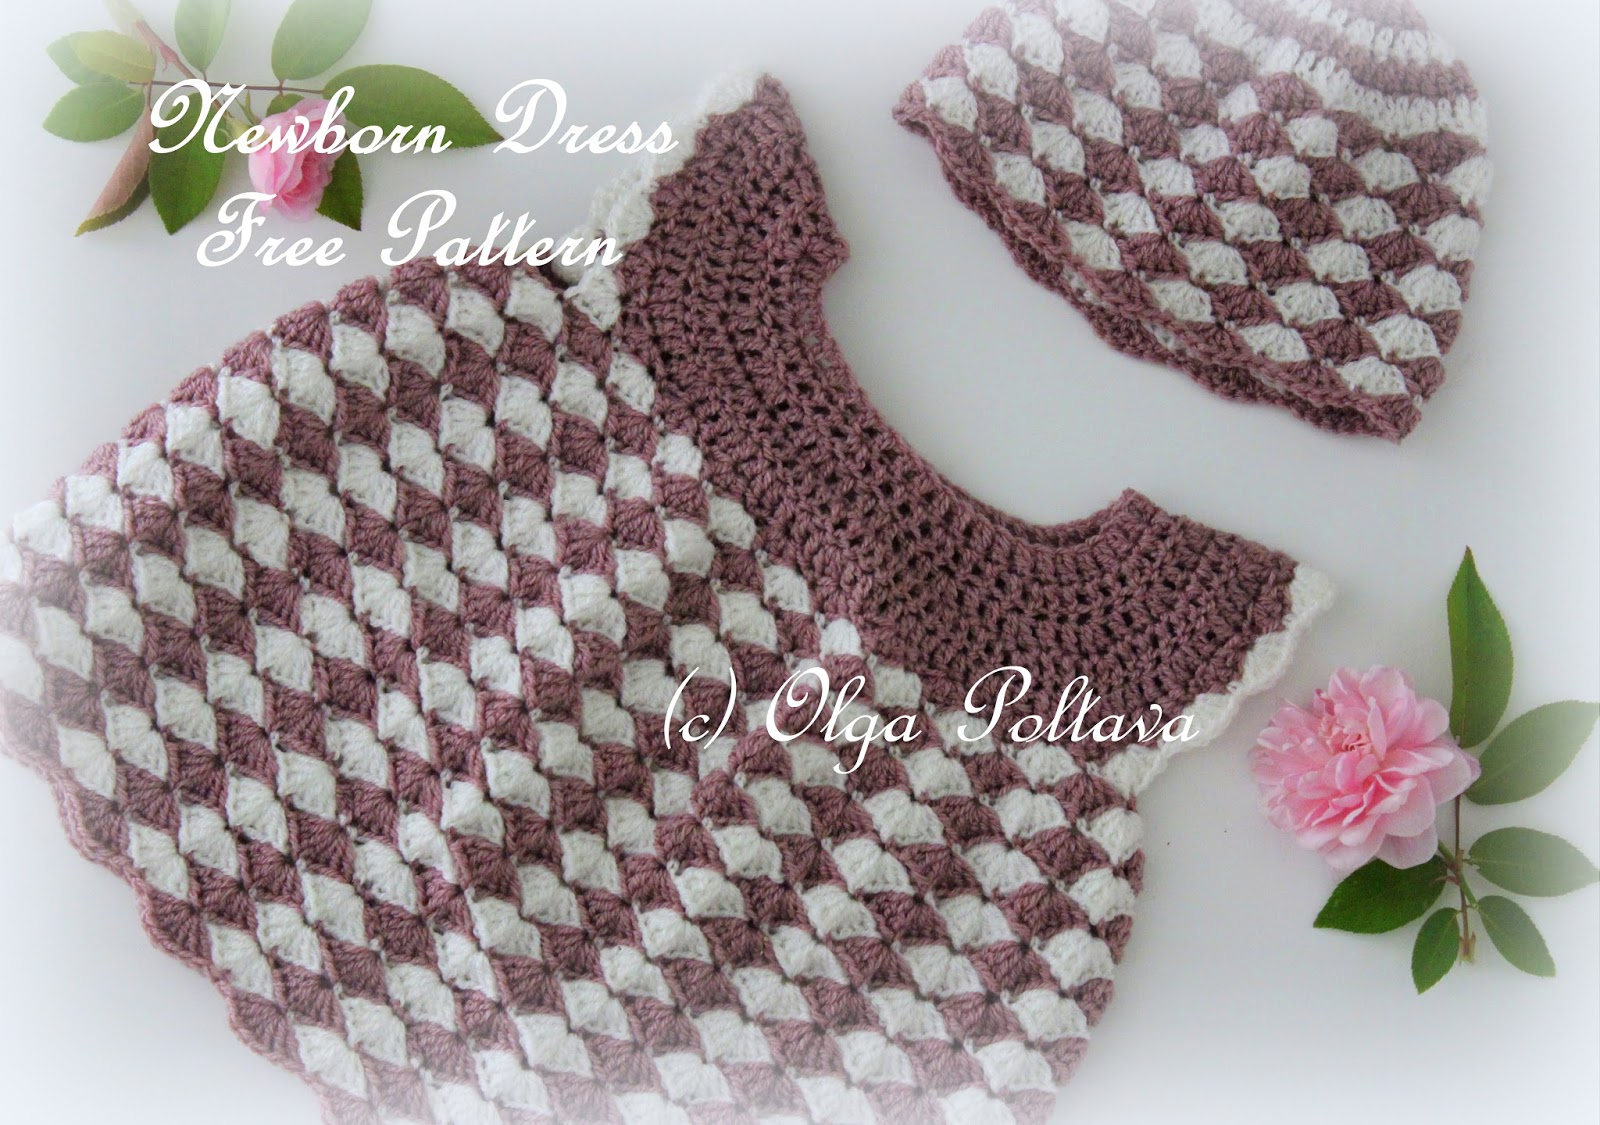 Lacy Crochet: Shells Newborn Dress Free Crochet Pattern